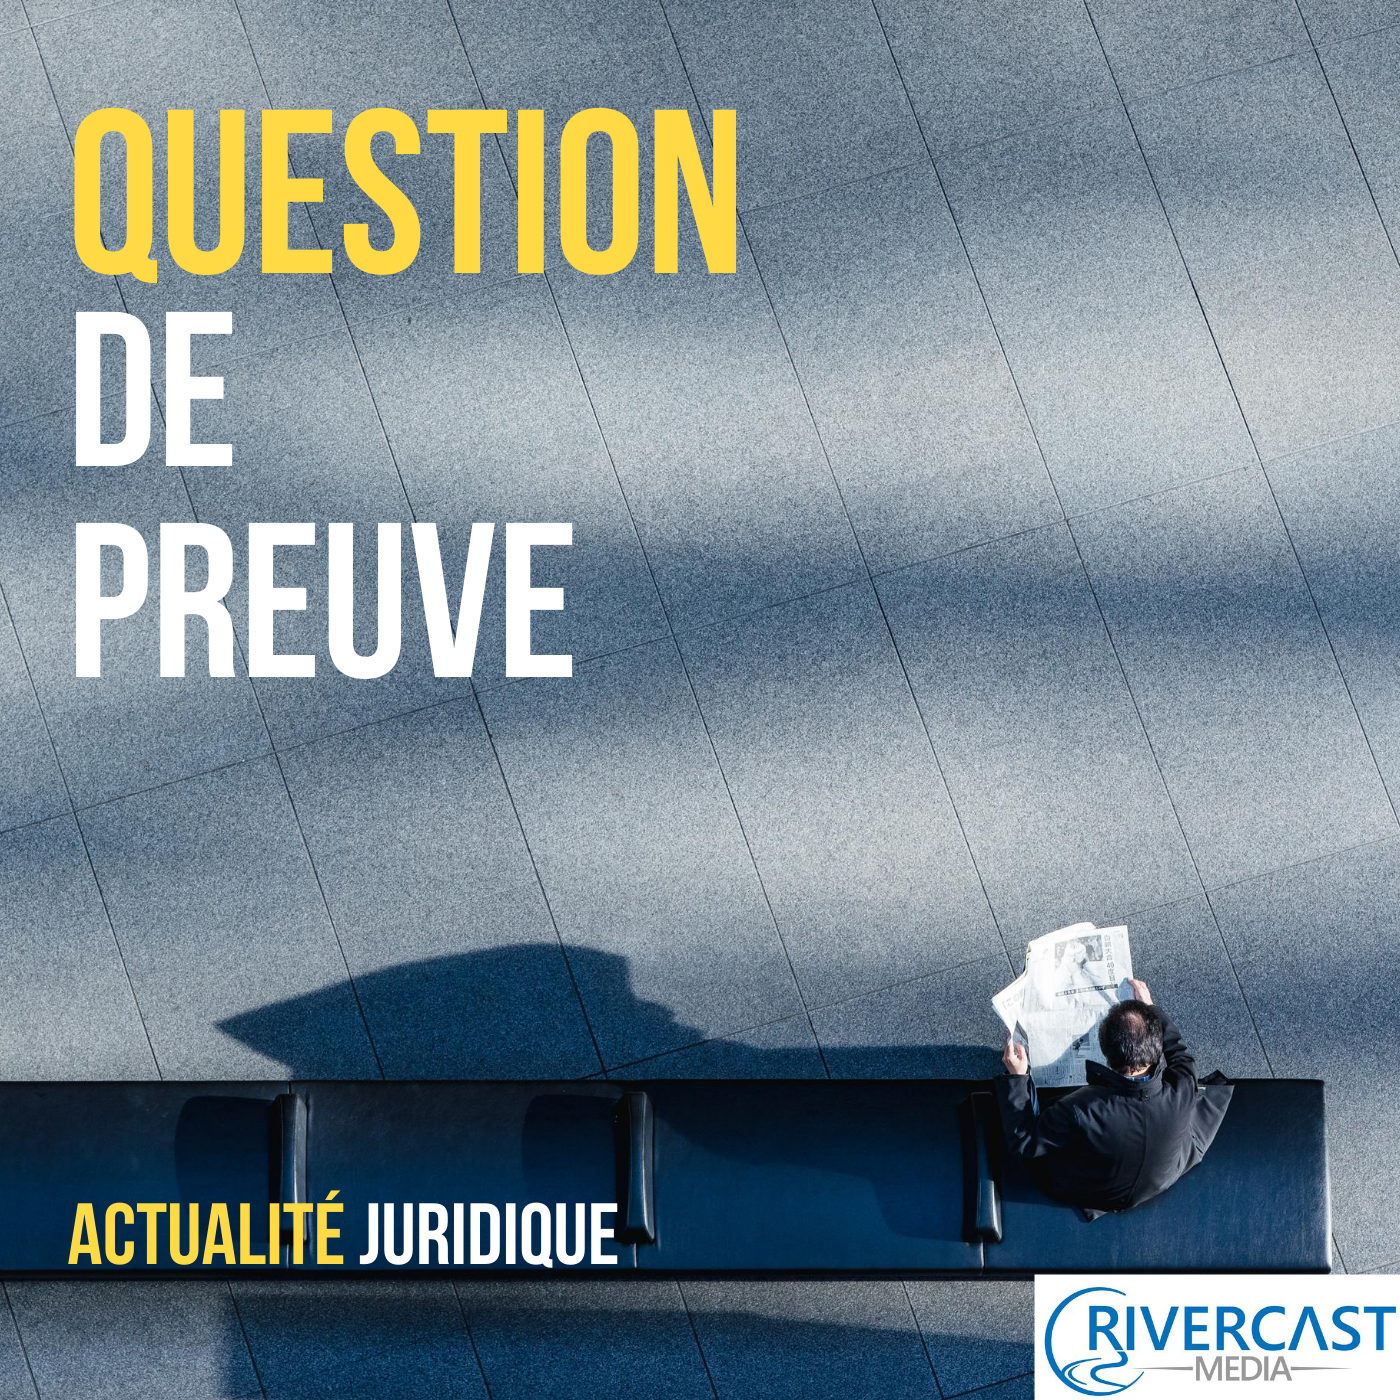 Question-de-preuve-logo